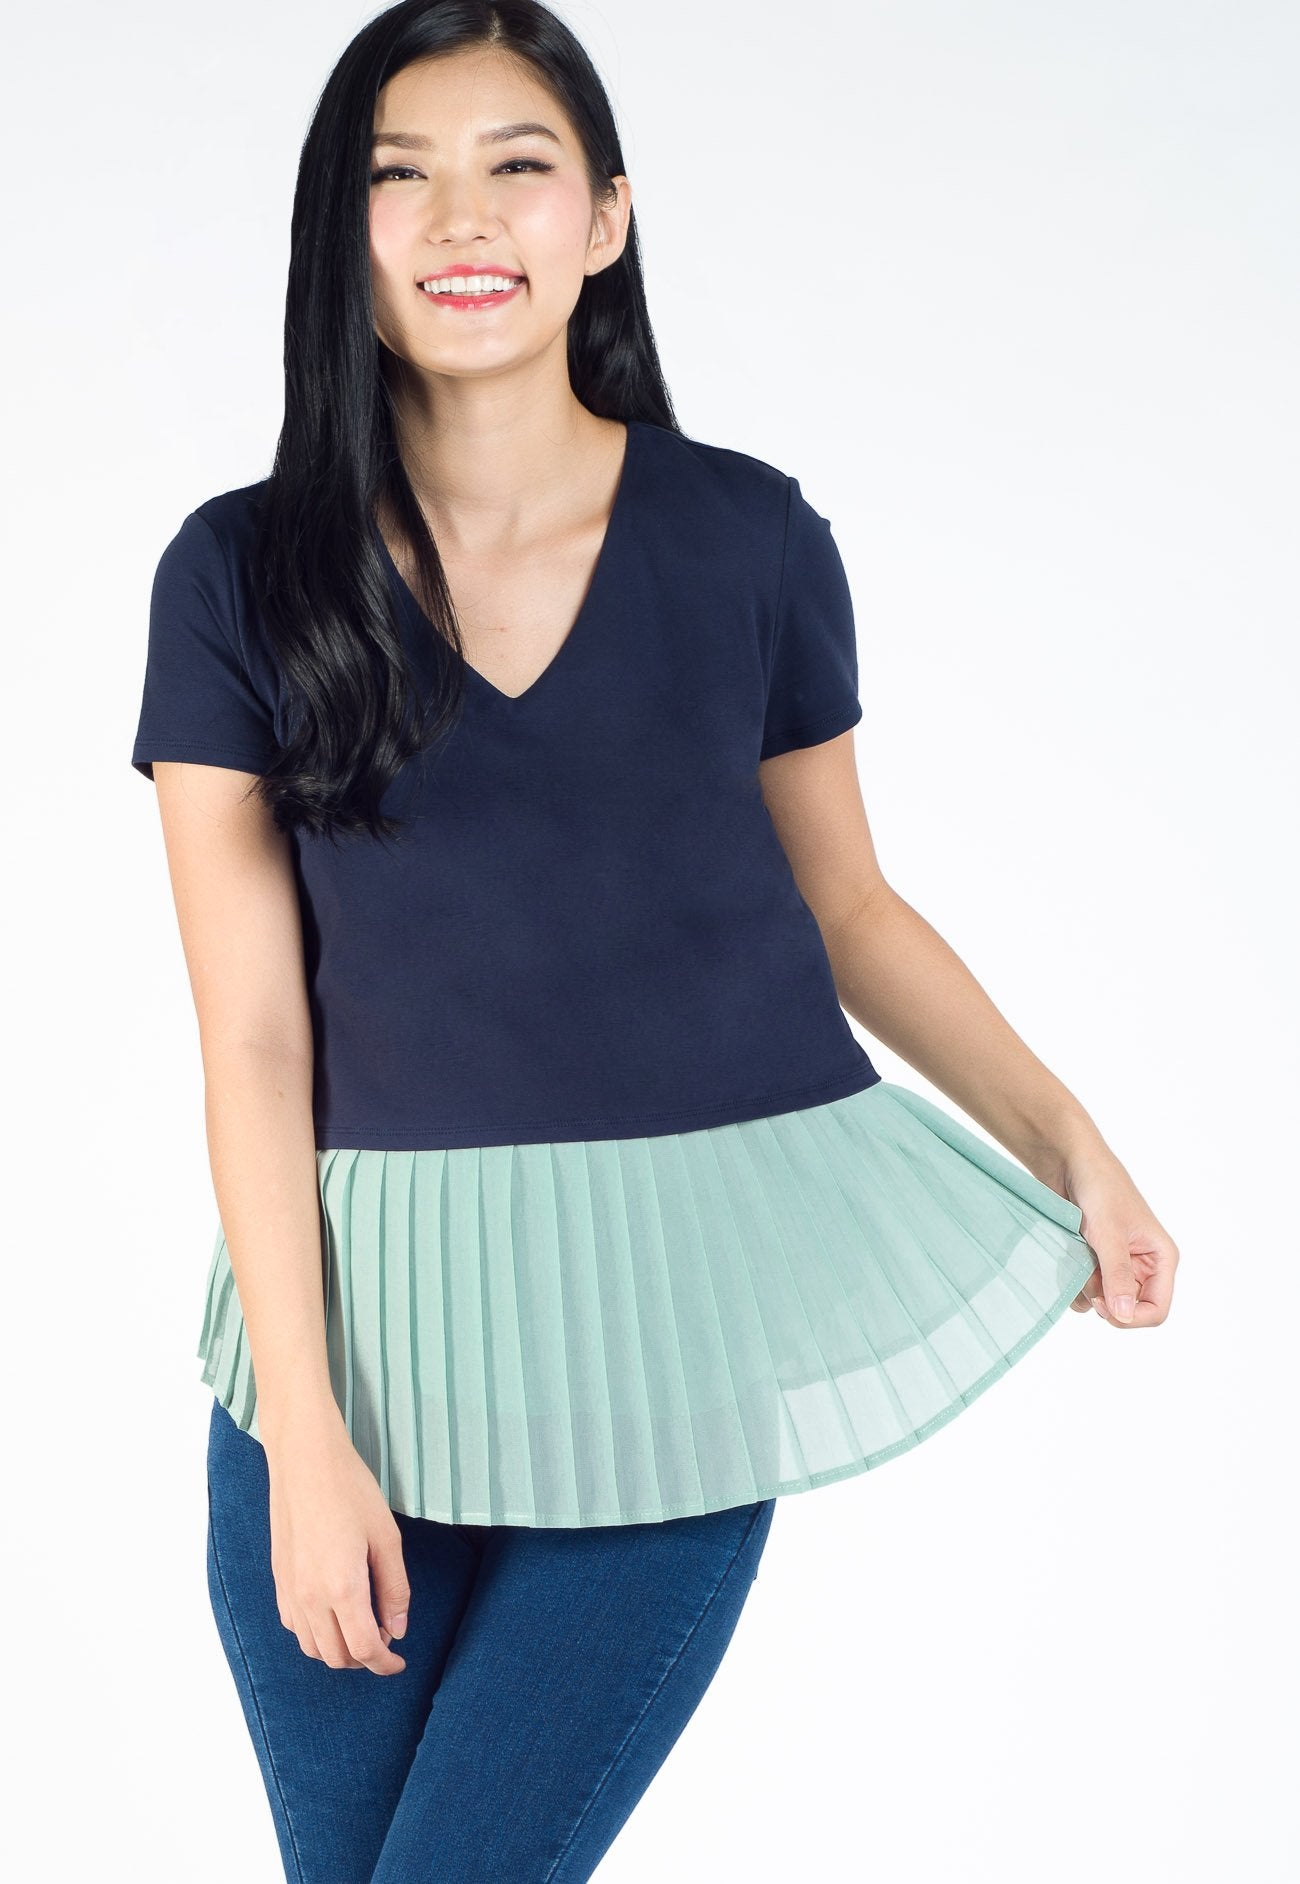 Sarah Pleated Nursing Top in Blue  by Jump Eat Cry - Maternity and nursing wear